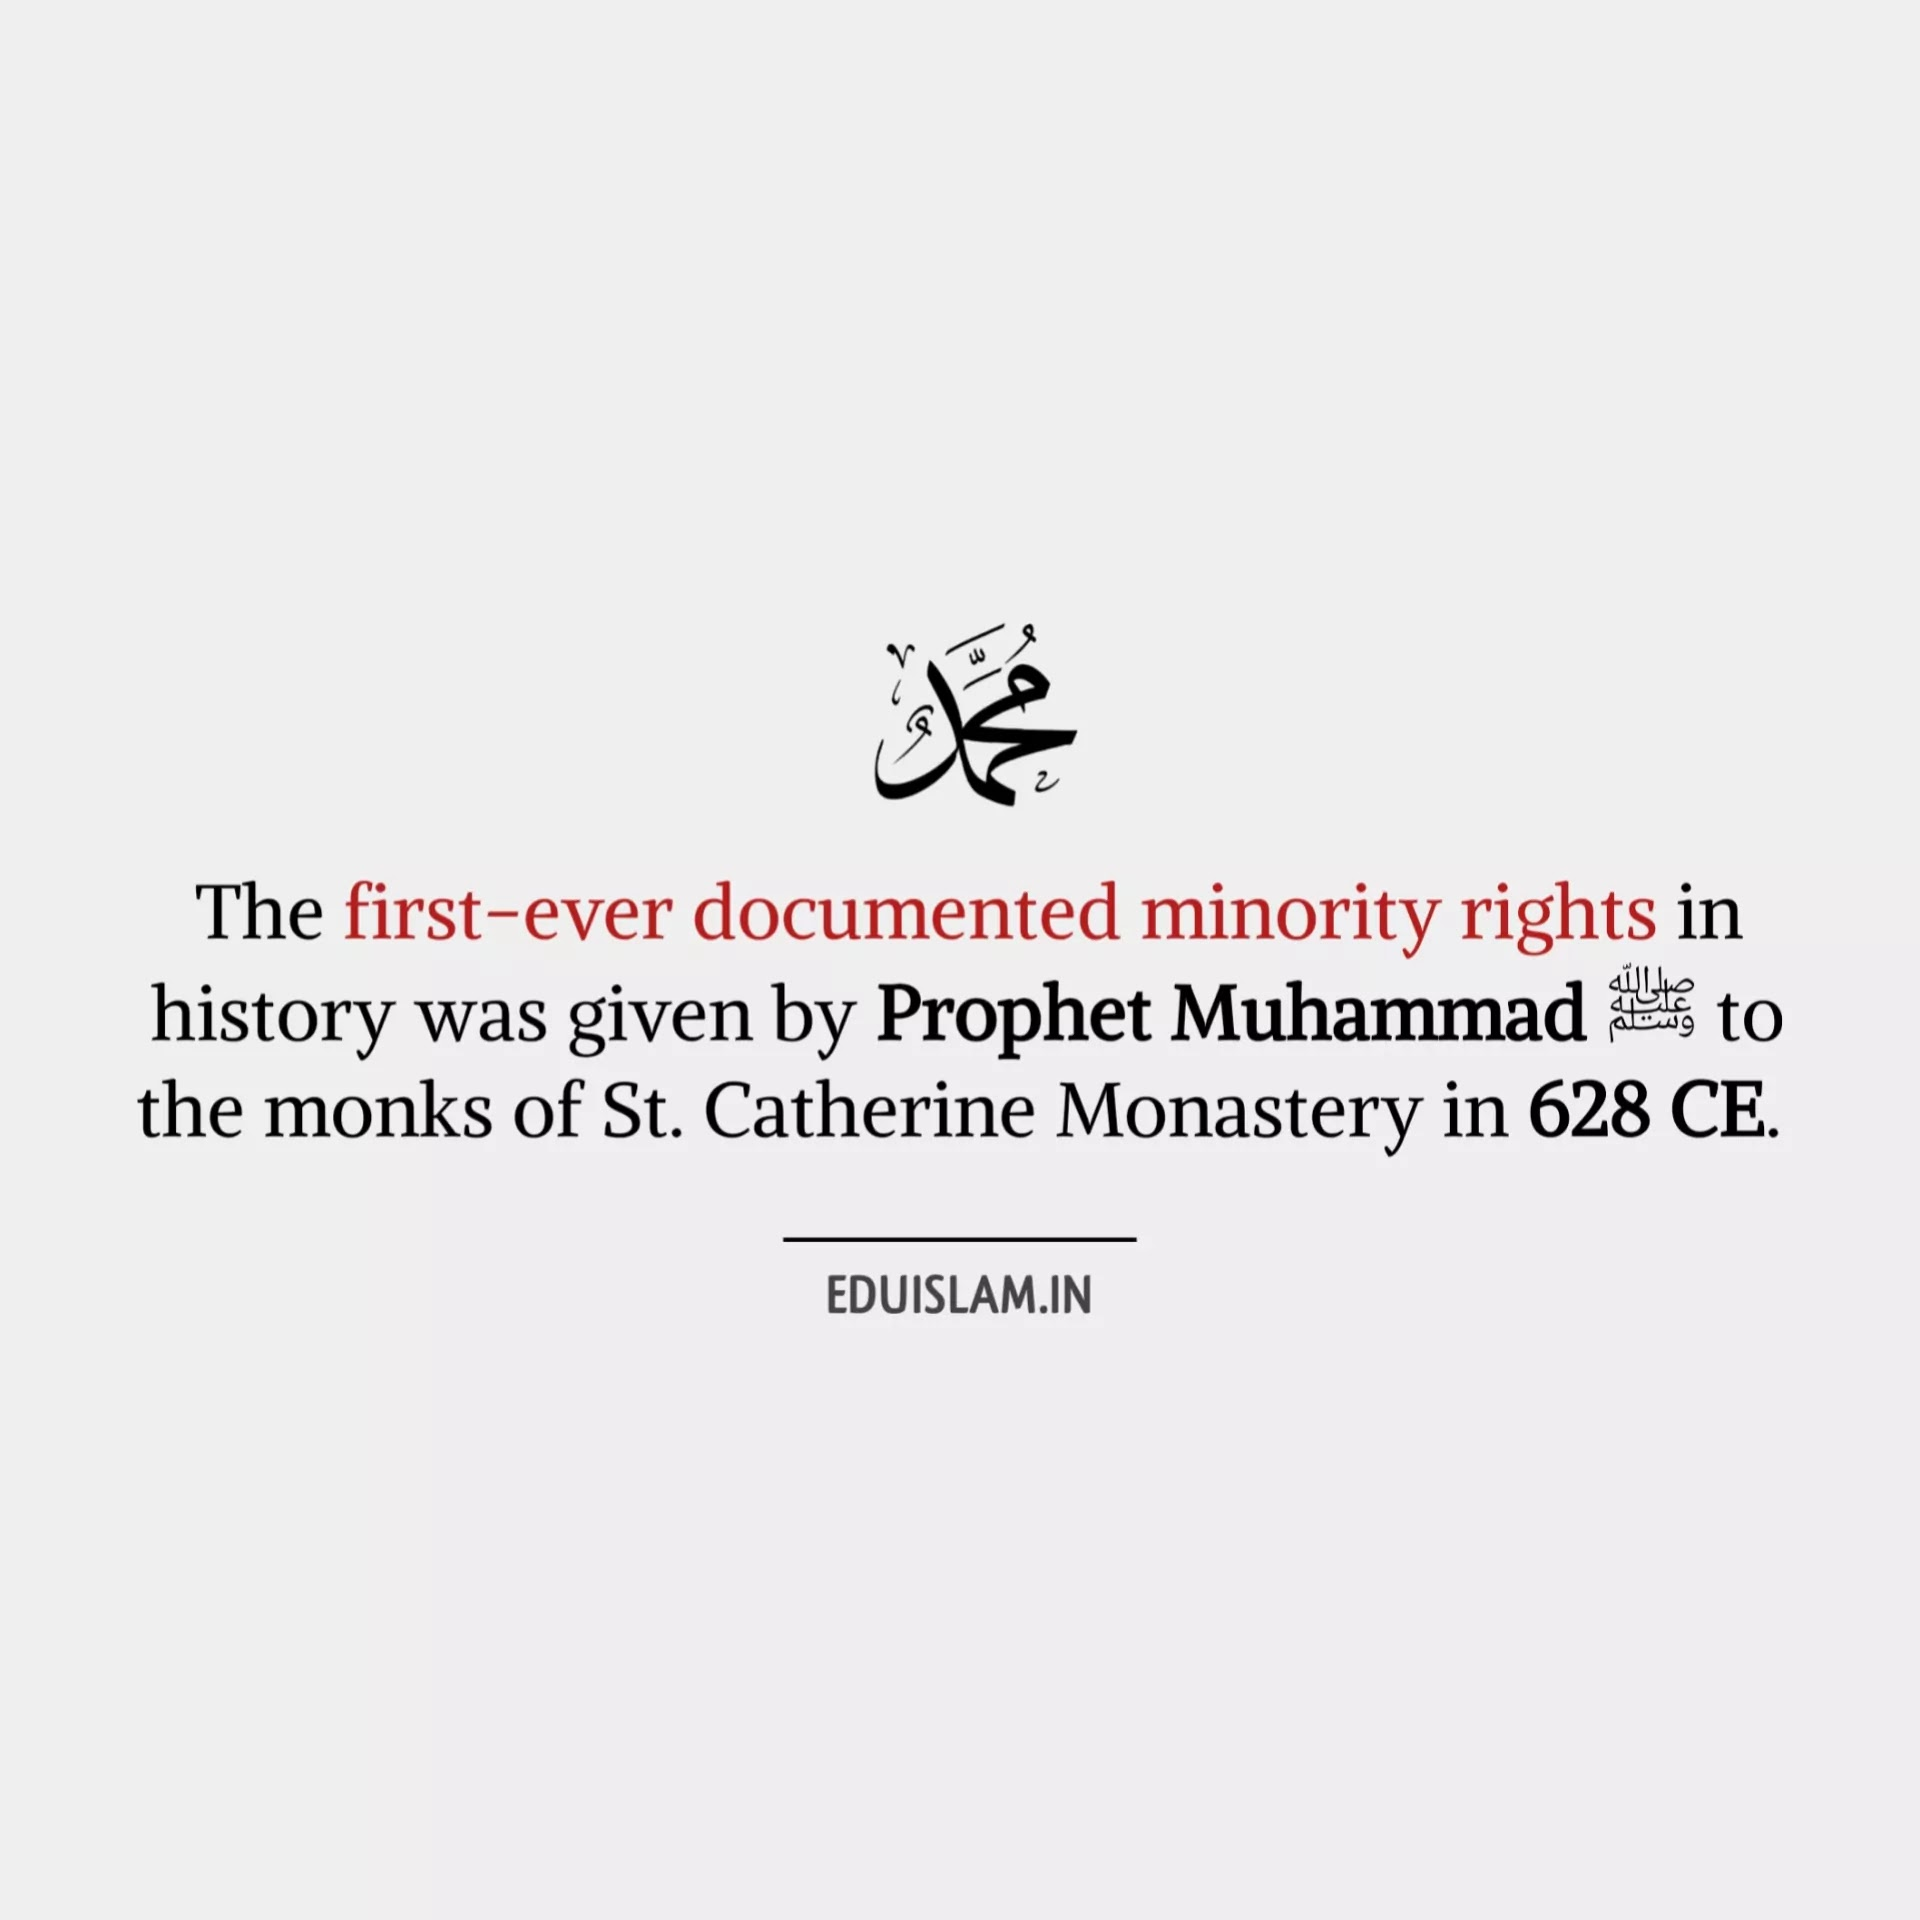 First minority rights in history by Prophet Muhammad